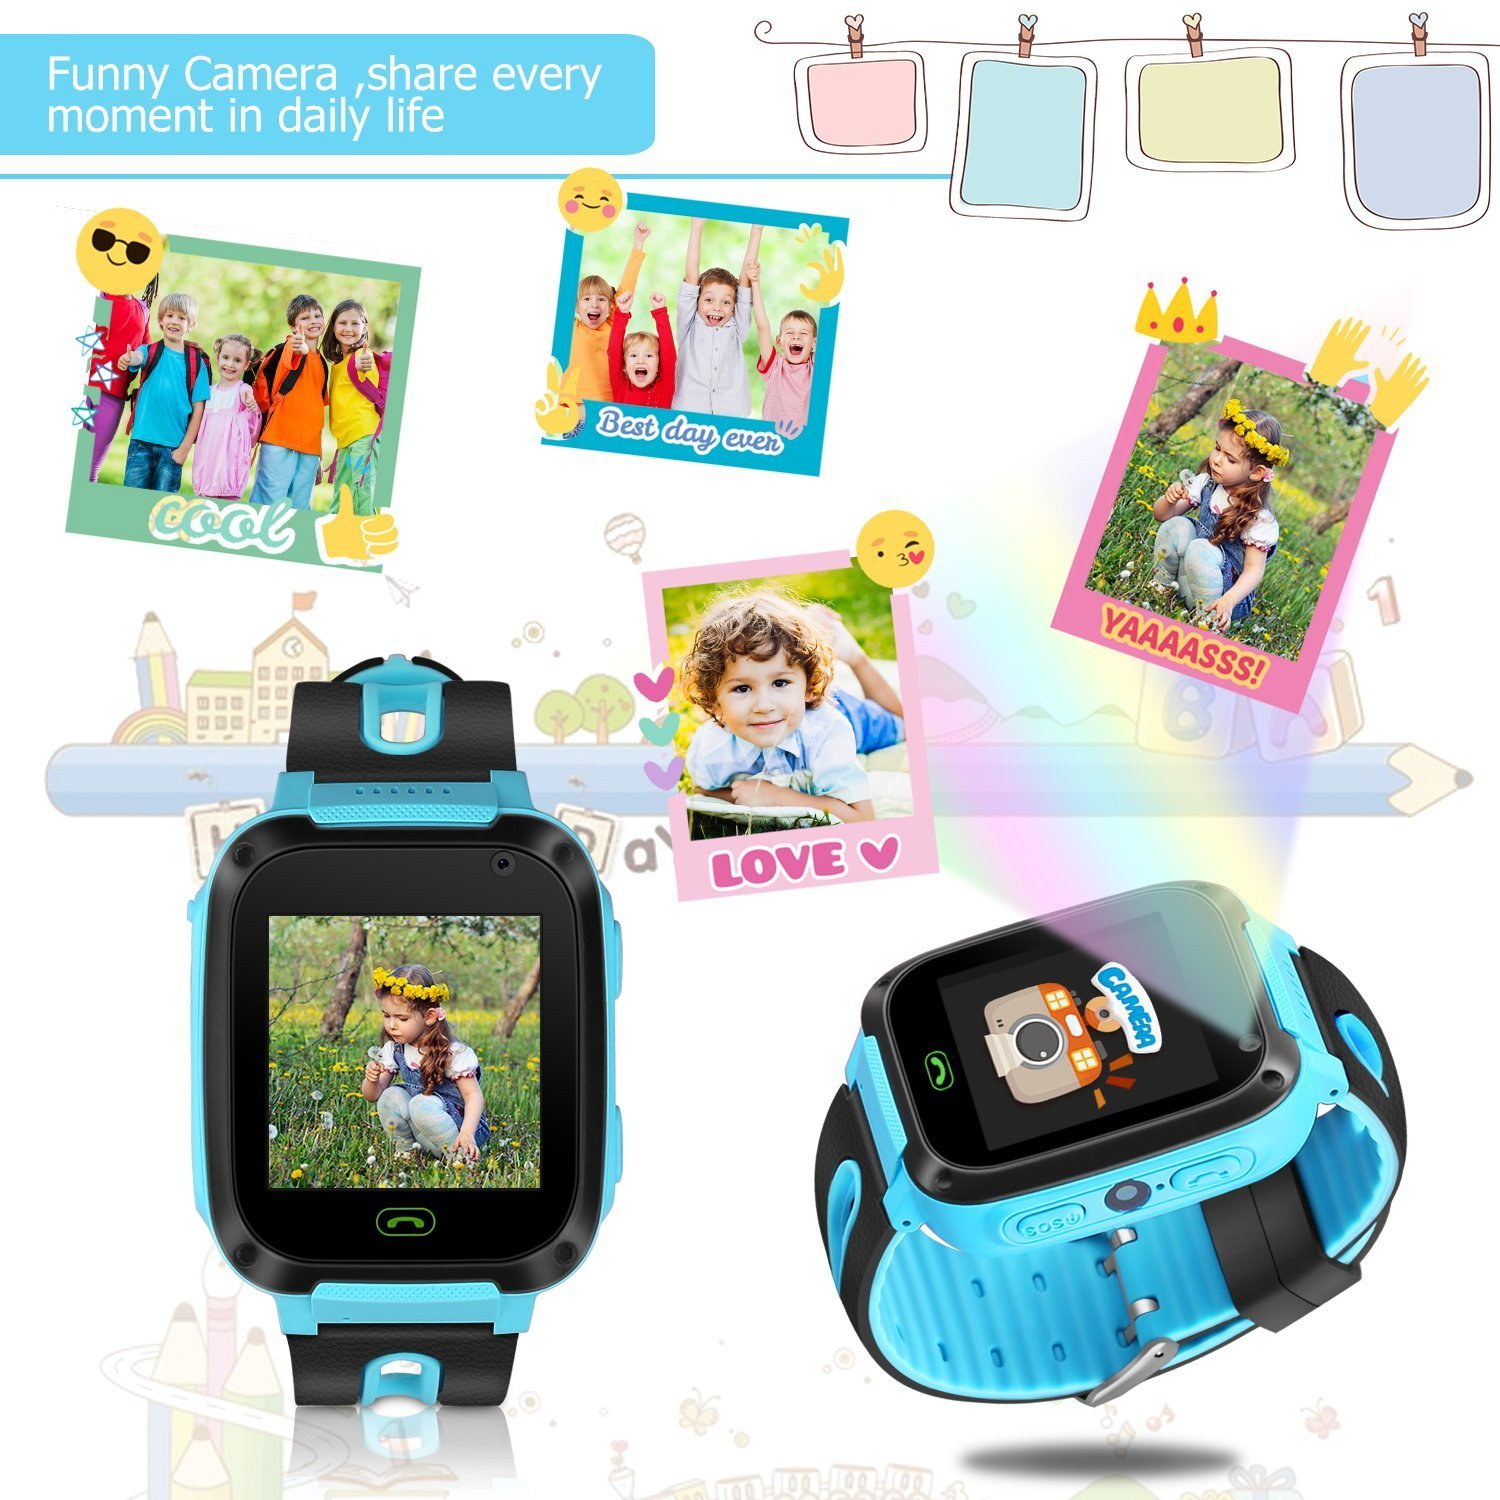 Kids Smart Watch Phone - Kids GPS Tracker Smartwatch for Girls Boys with Mobile Phone SOS Anti-lost Camera Game Touch Screen Children Outdoor Digital Wrist Watch Bracelet for Summer Holiday Gift by Kidaily (Image #7)